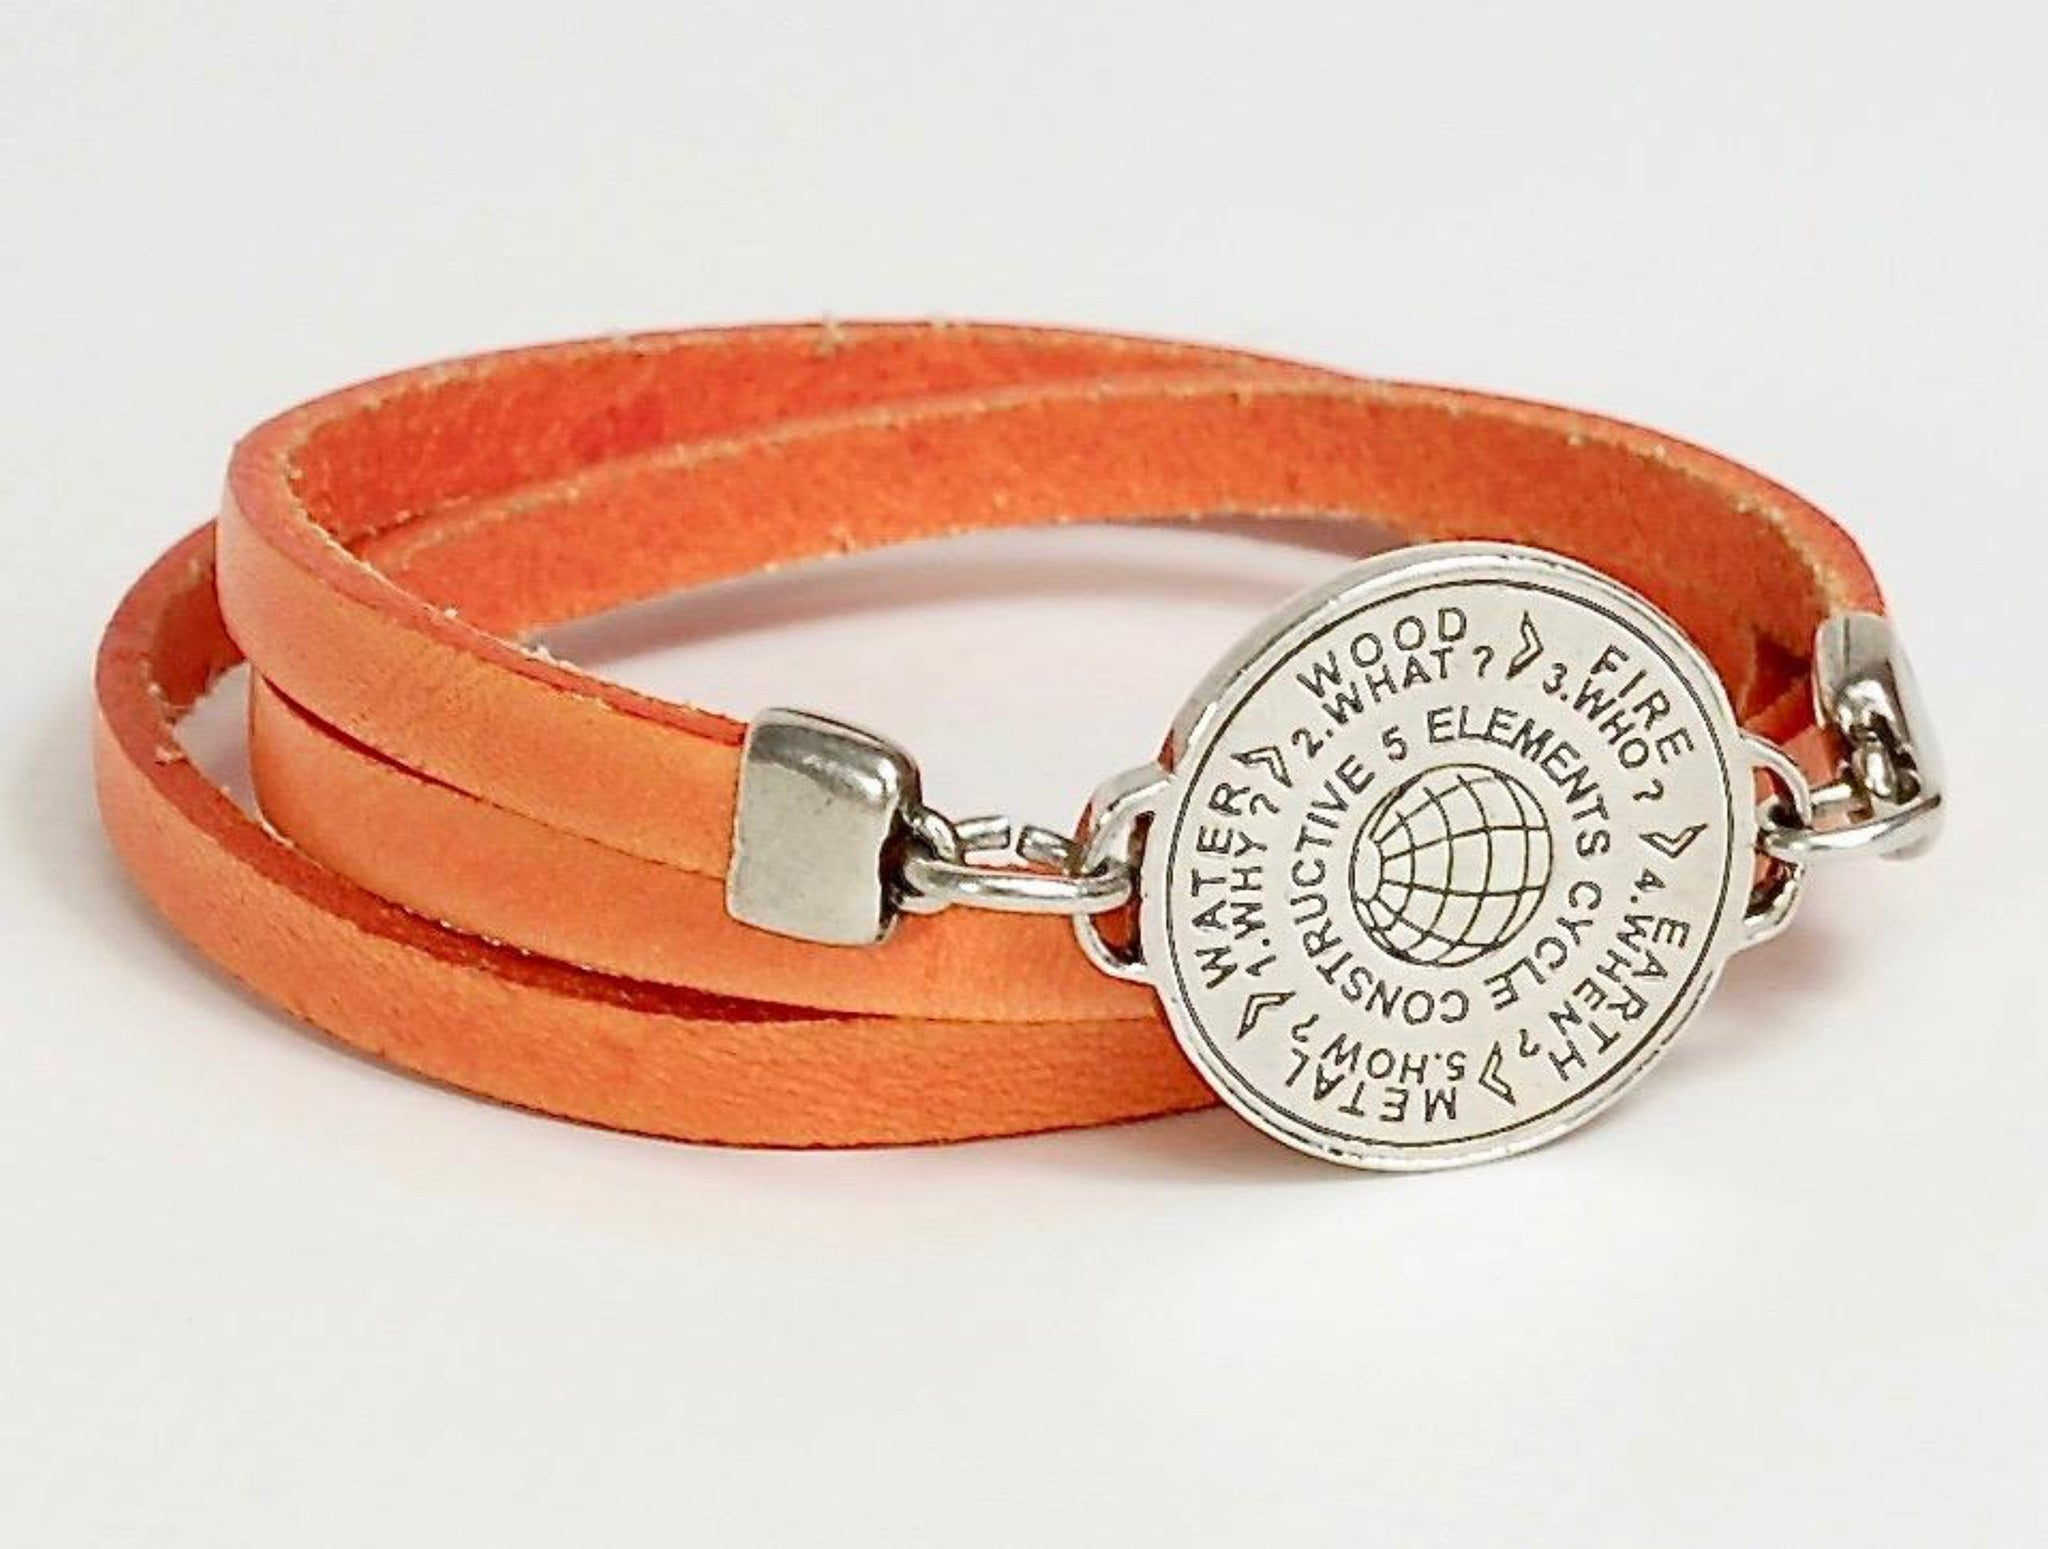 5 Elements Jewelry Bracelet and Pendant (two in one)orange color***